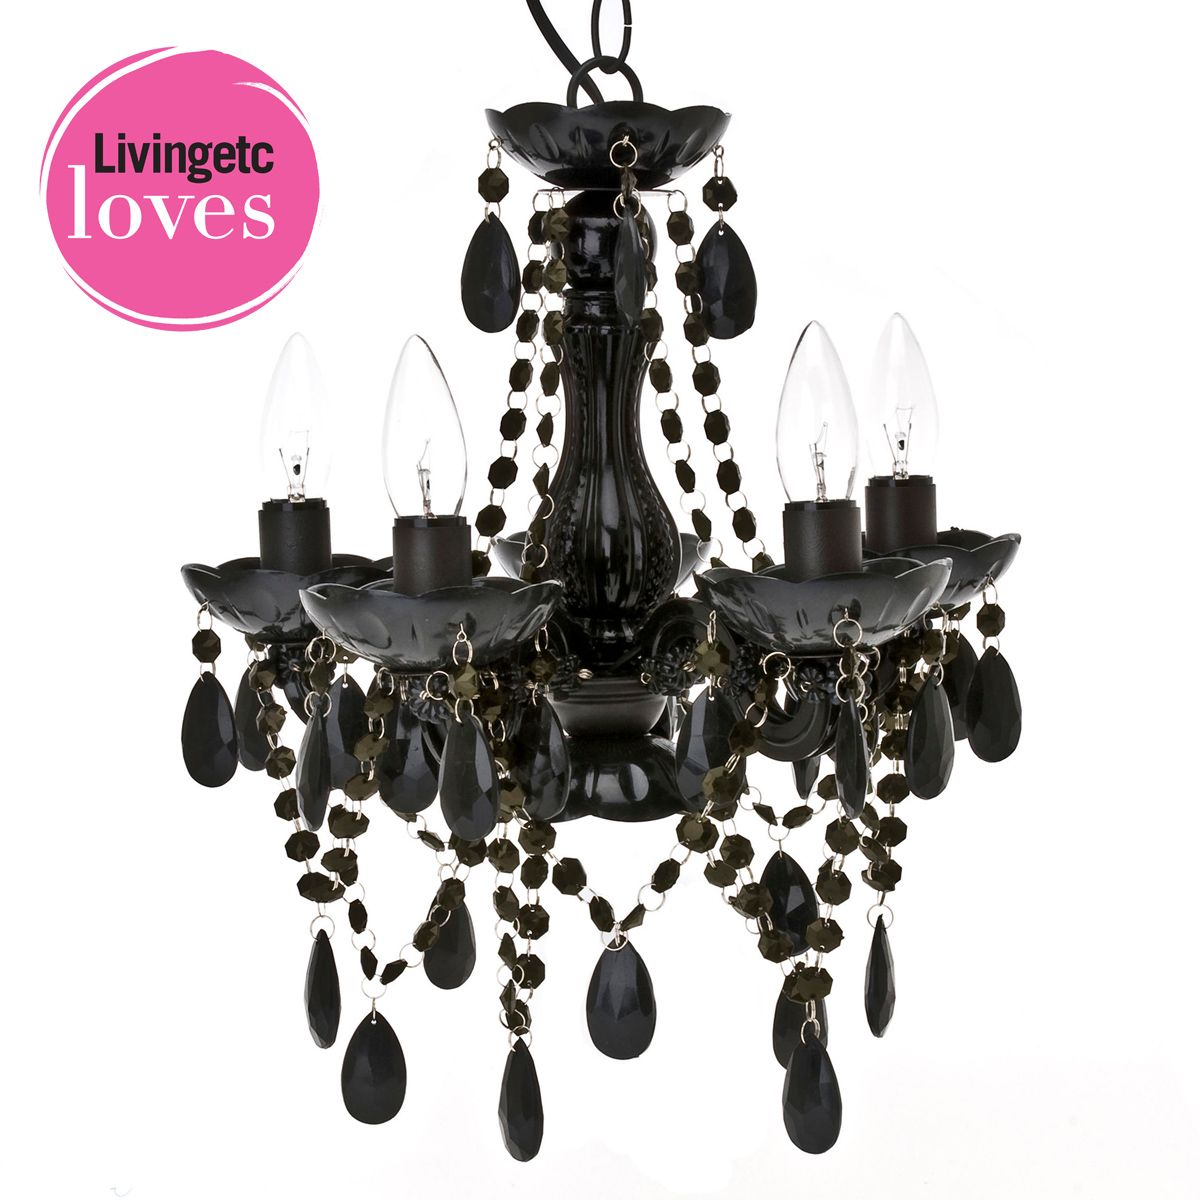 Petit black chandelier by the french bedroom company fun petit black chandelier by the french bedroom company aloadofball Choice Image